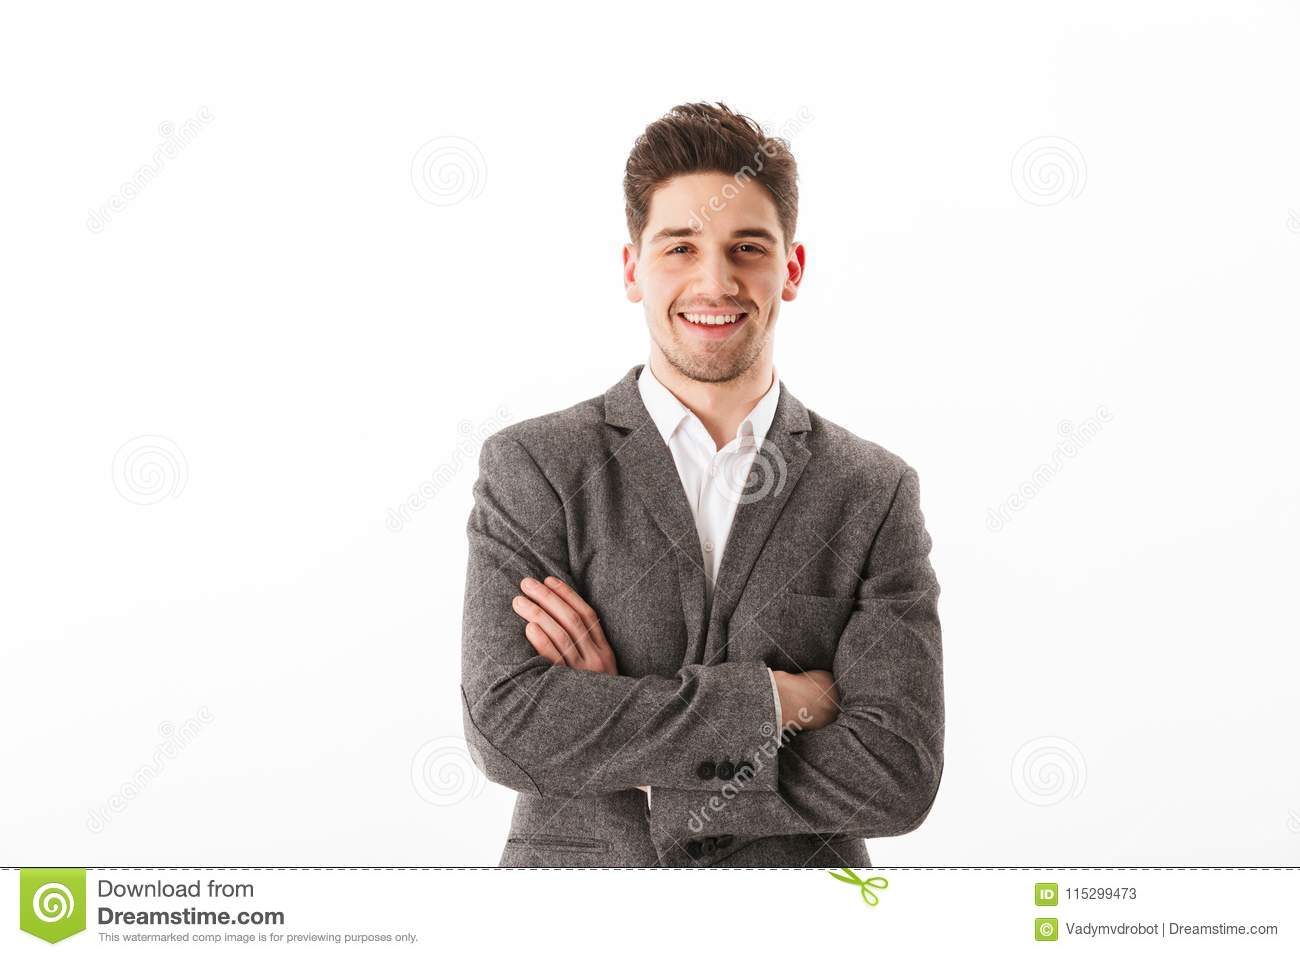 Smiling business man with crossed arms looking at the camera